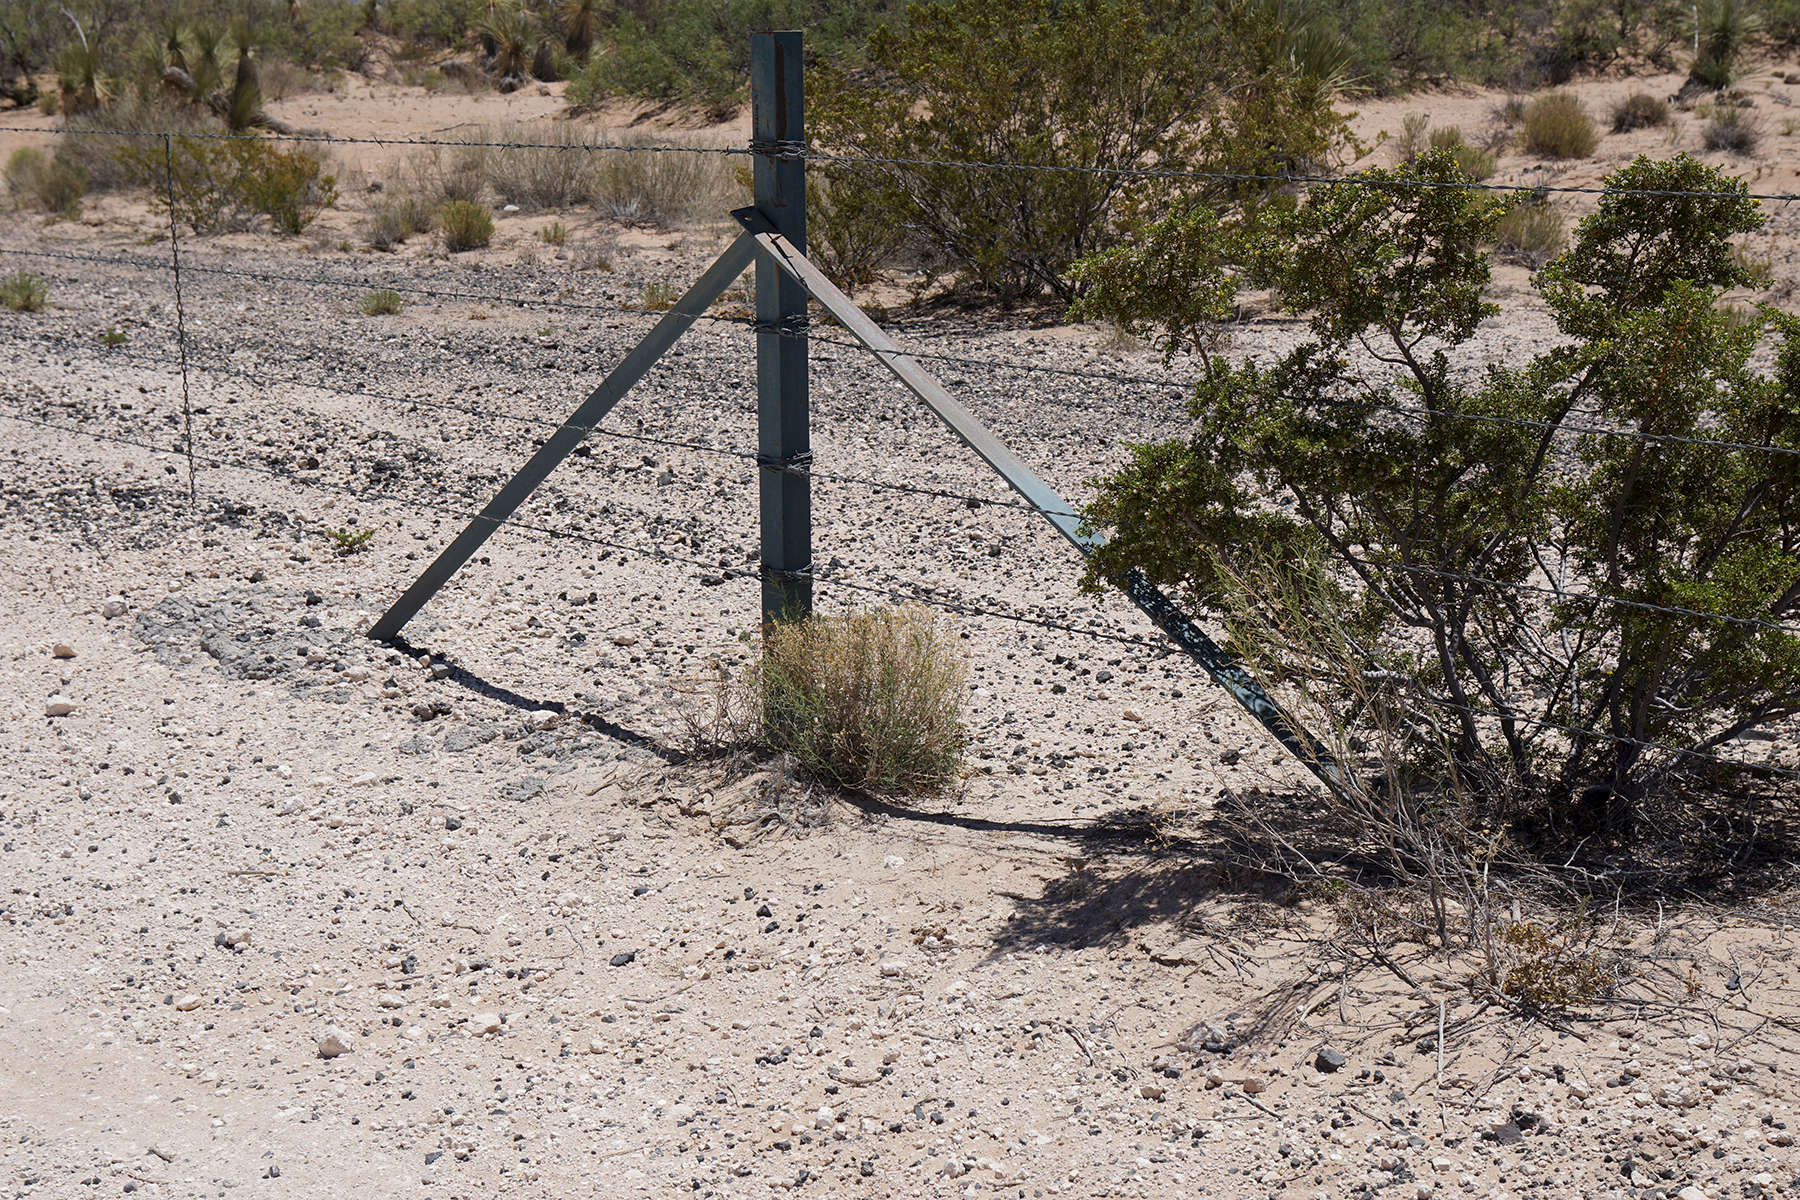 Fence cordoning off property along Hwy 9 near the border of New Mexico/Mexico.